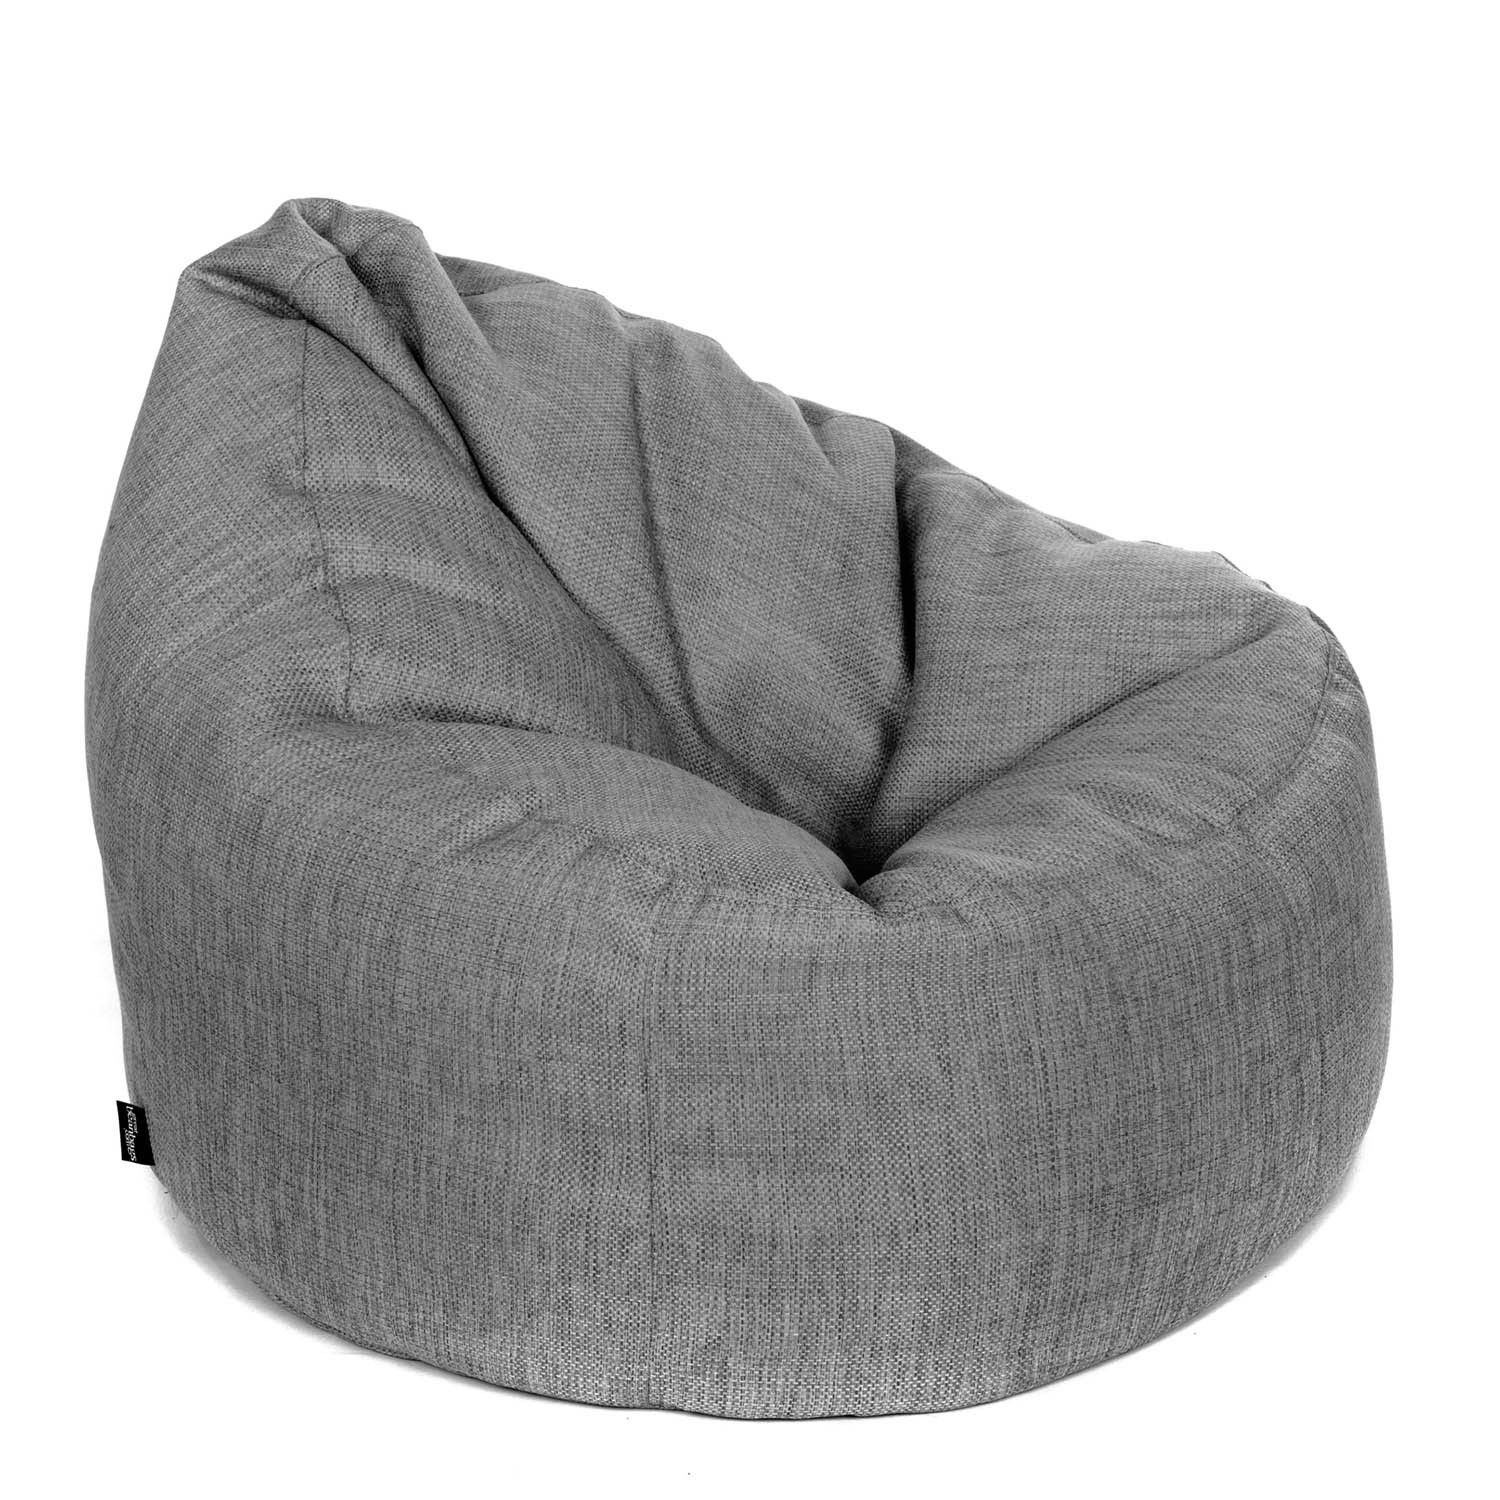 Sitzsack Bett Luxury Bean Bag Chair Stühle Bean Bag Chair Outdoor Lounge